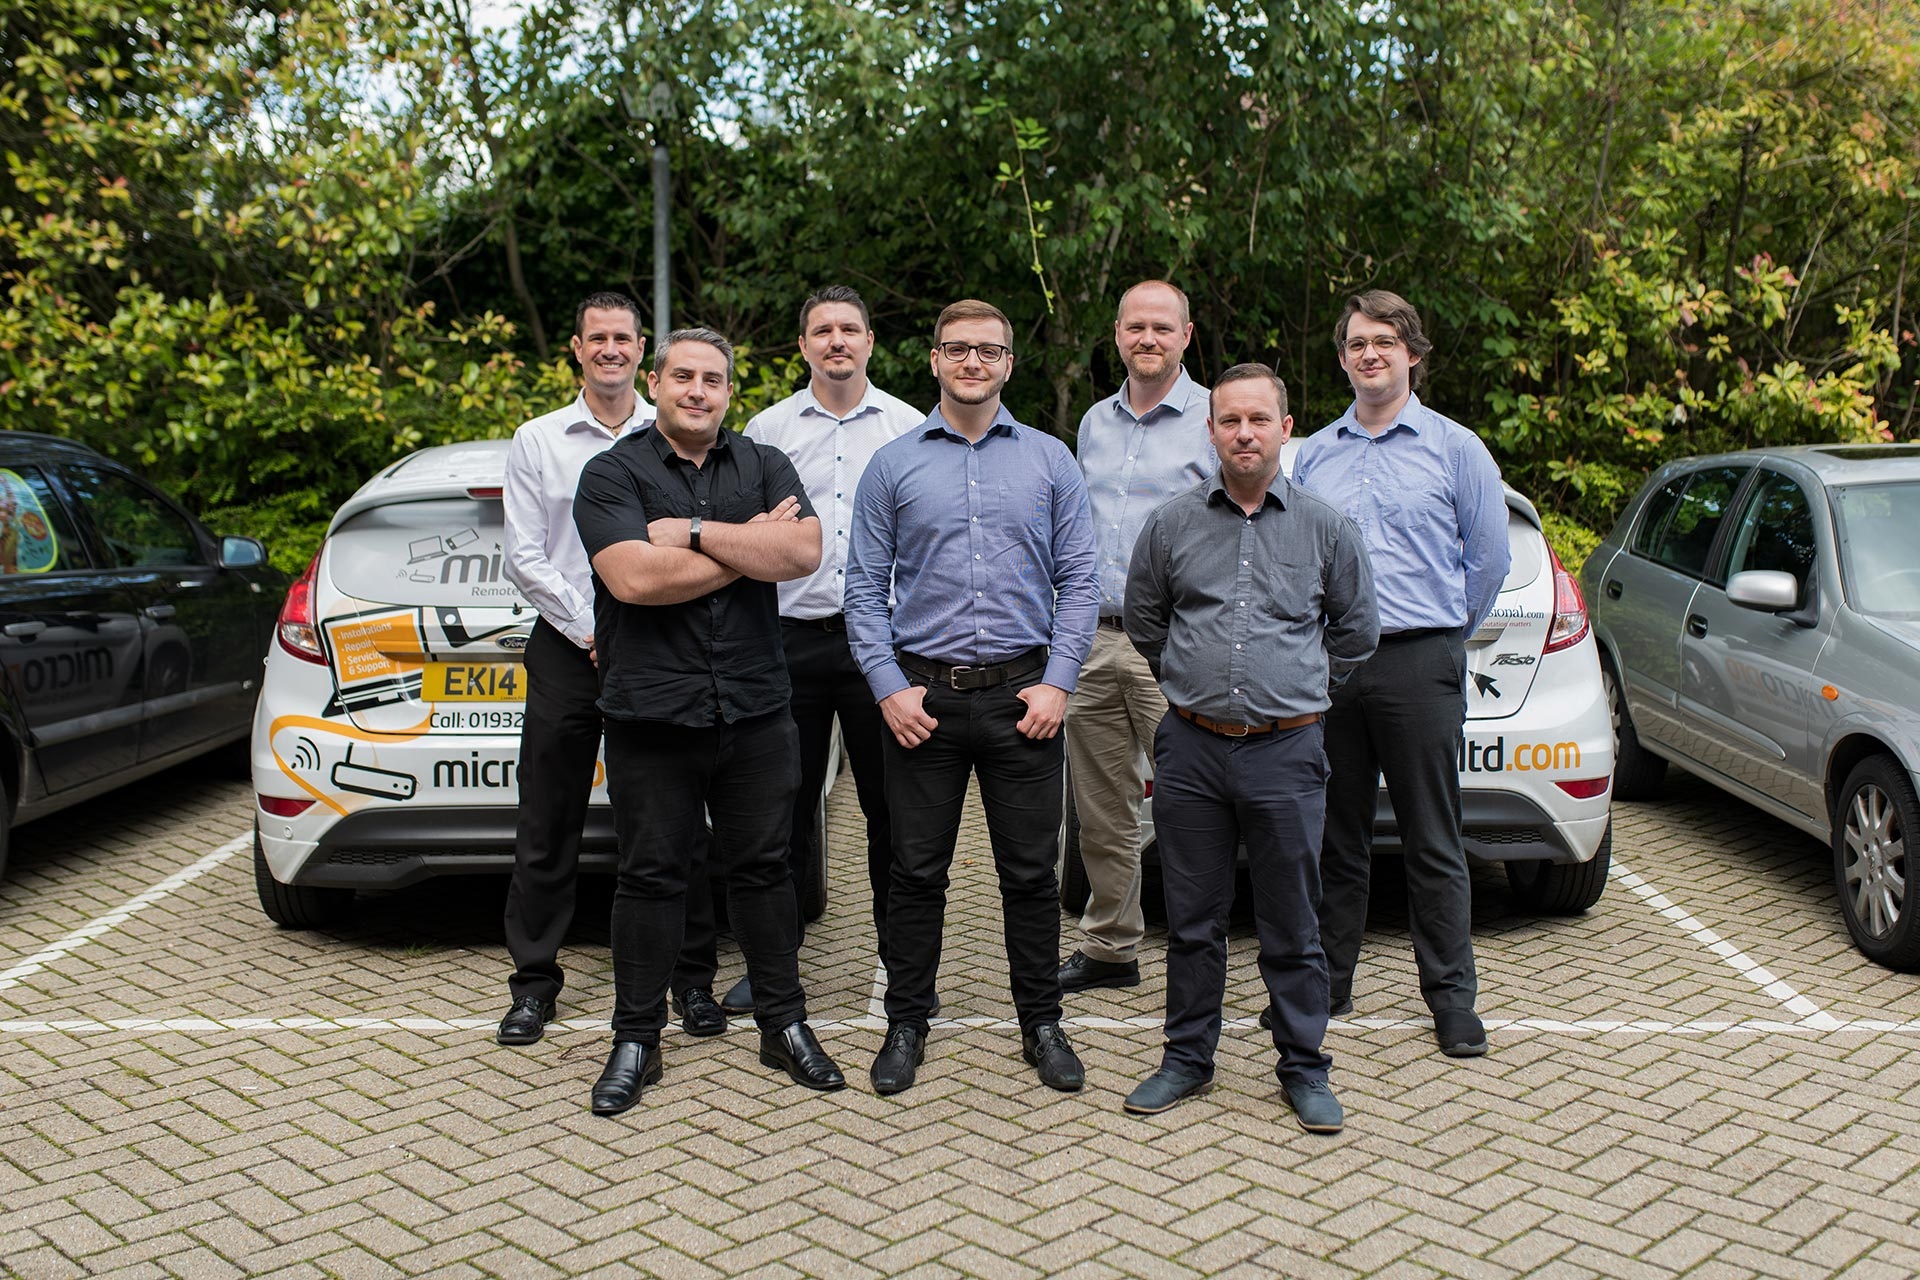 IT Support Surrey - Micro Pro Team Photo